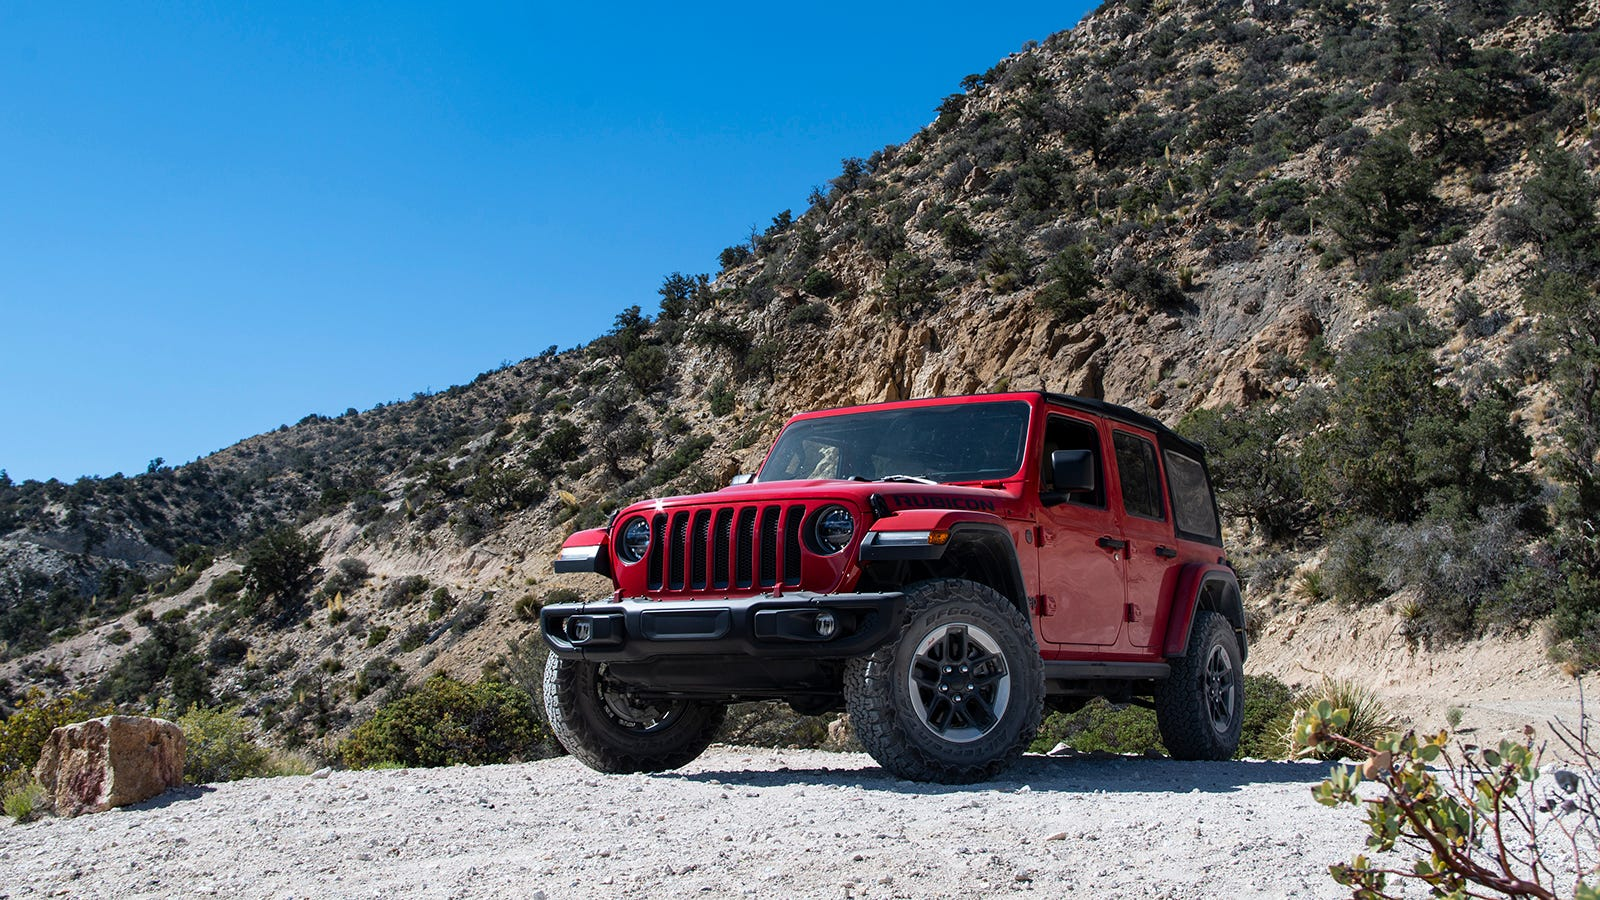 5c68e9df9dc7e He figured out what I meant as I peeled off Route 18 onto the rocky goat  path that drops into a place called Cactus Flat. The Jeep bounced and  bucked in ...